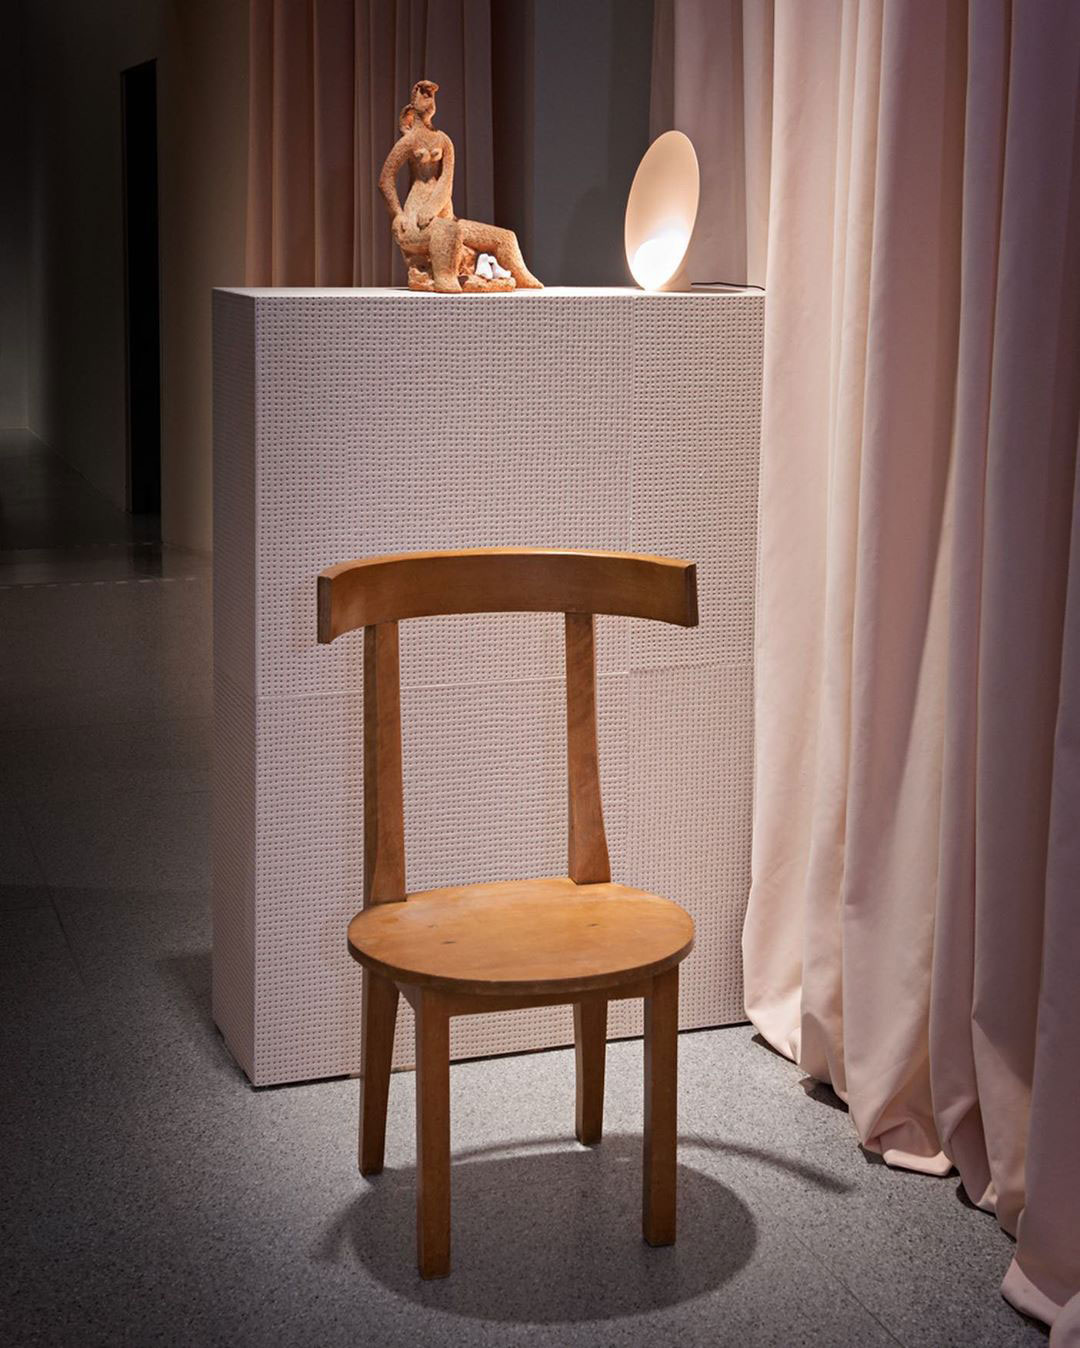 Vibia The Edit - Vibia Featured in an Evocative Installation at the Stockholm Design Week